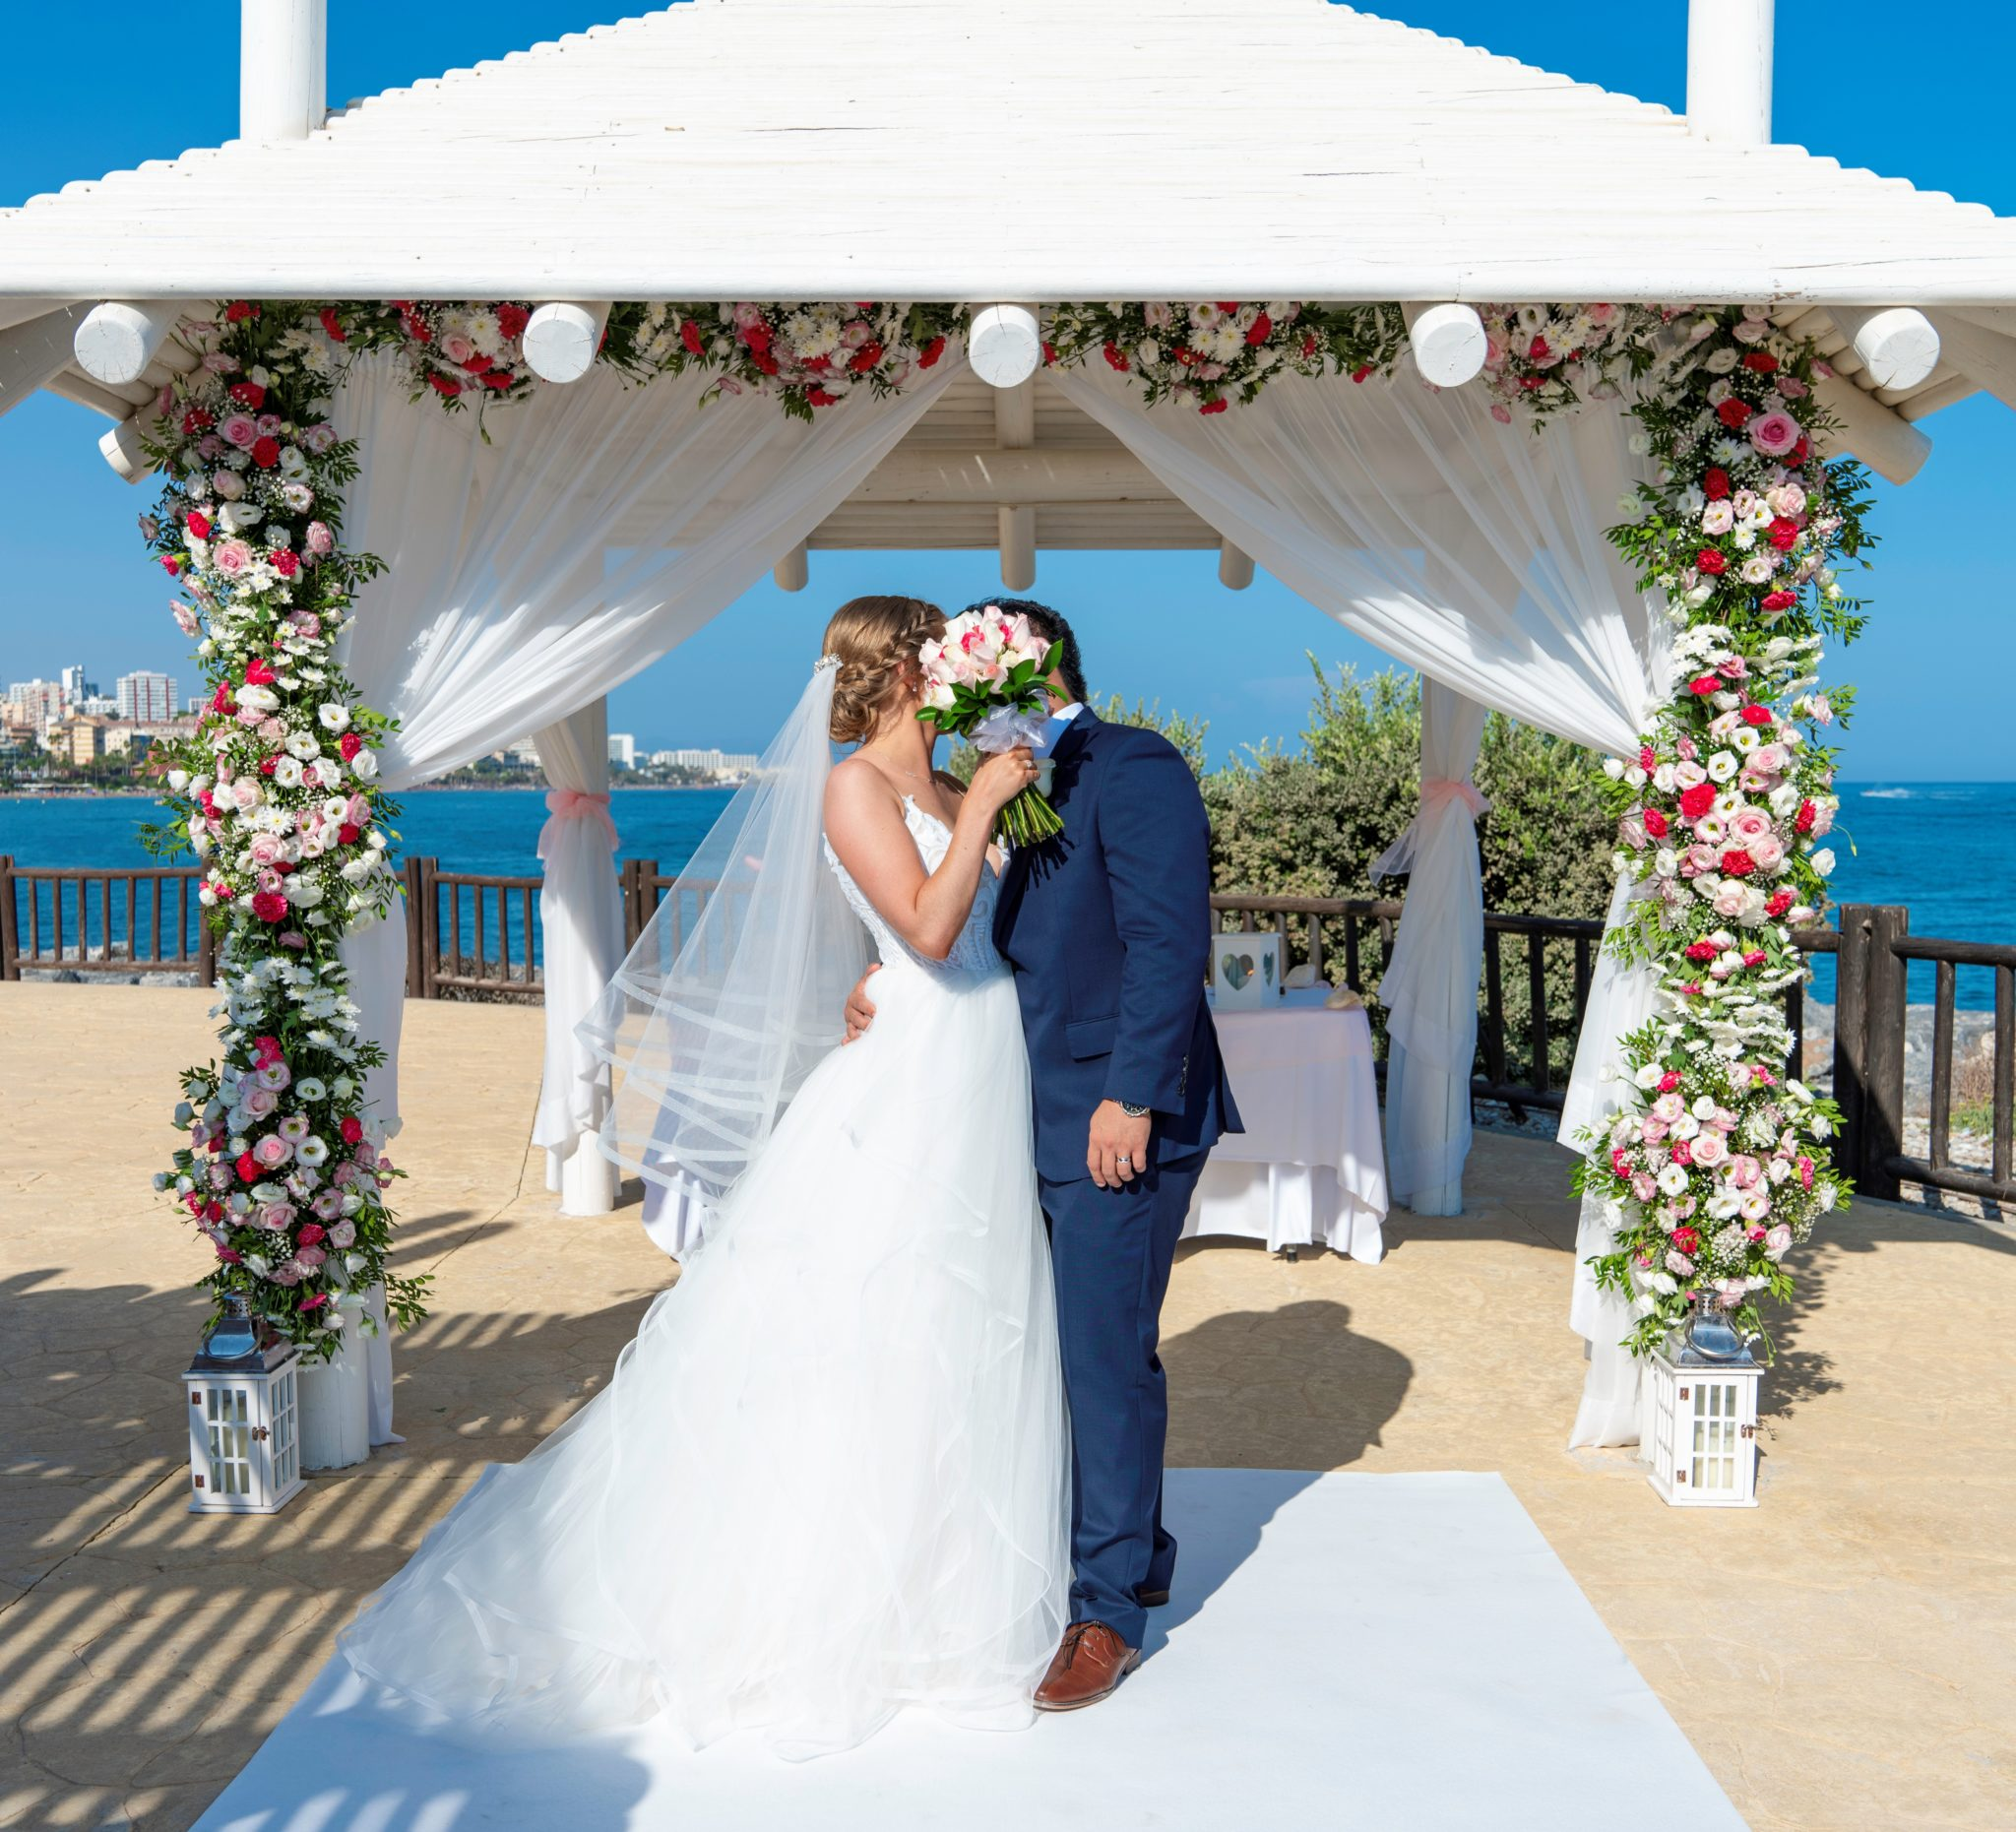 Silverscreen - Getting Married Spain - Sunset Beach Club Wedding Ceremony - New Chairs - Blue Bows - Destination Wedding Spain - Irish Photographer & Videographers - Sunset Beach Wedding